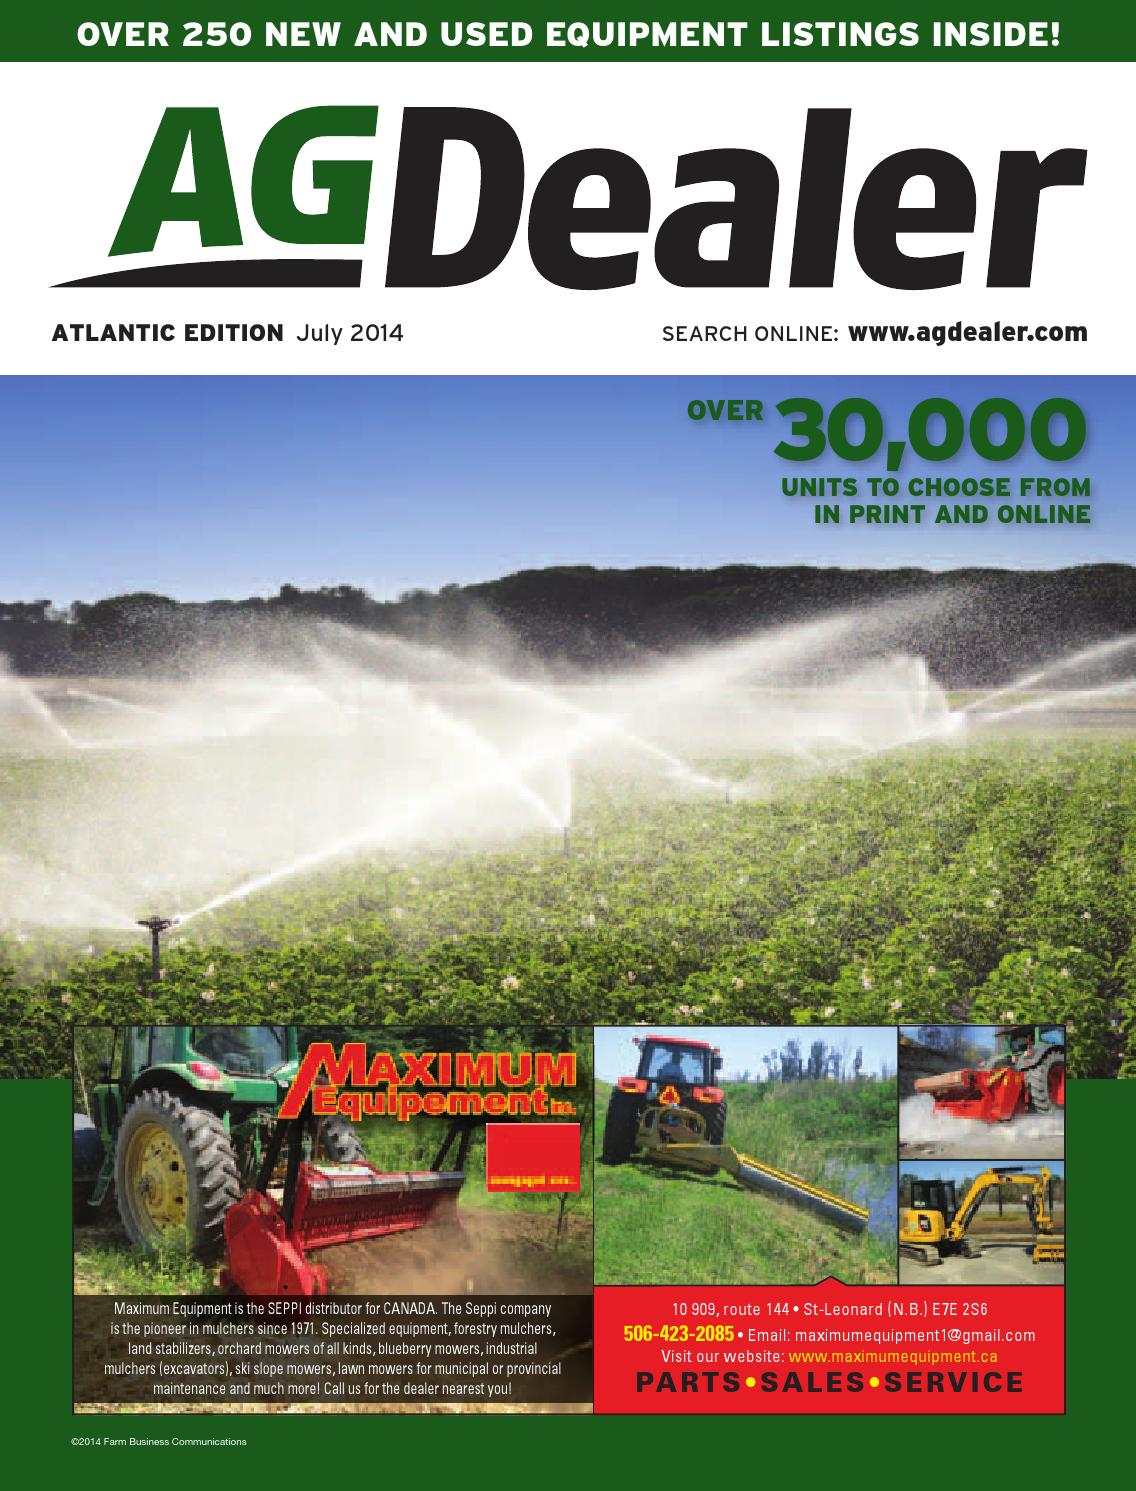 AGDealer Atlantic Edition, July 2014 by Farm Business Communications